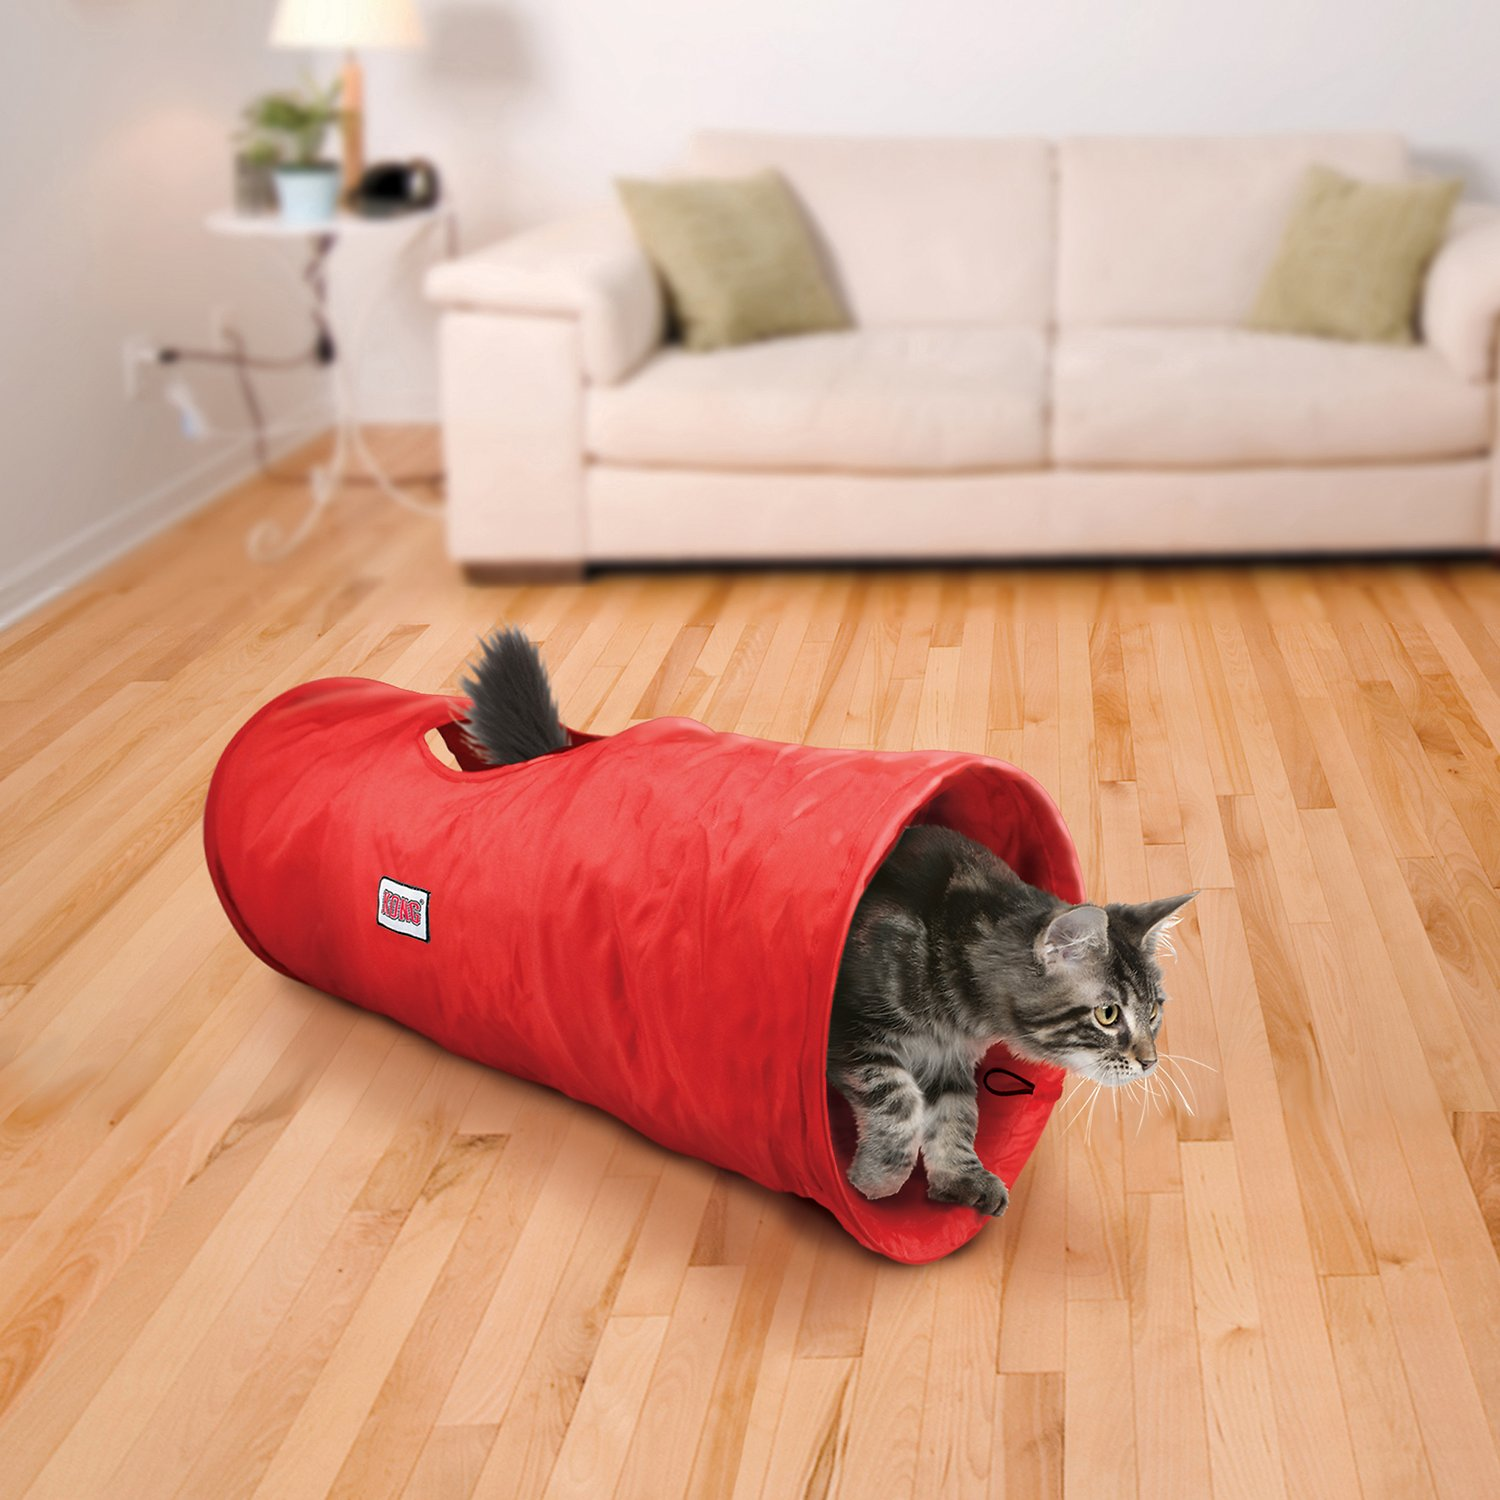 cat tunnel sofa price repair sagging cushions kong active nylon toy red chewy